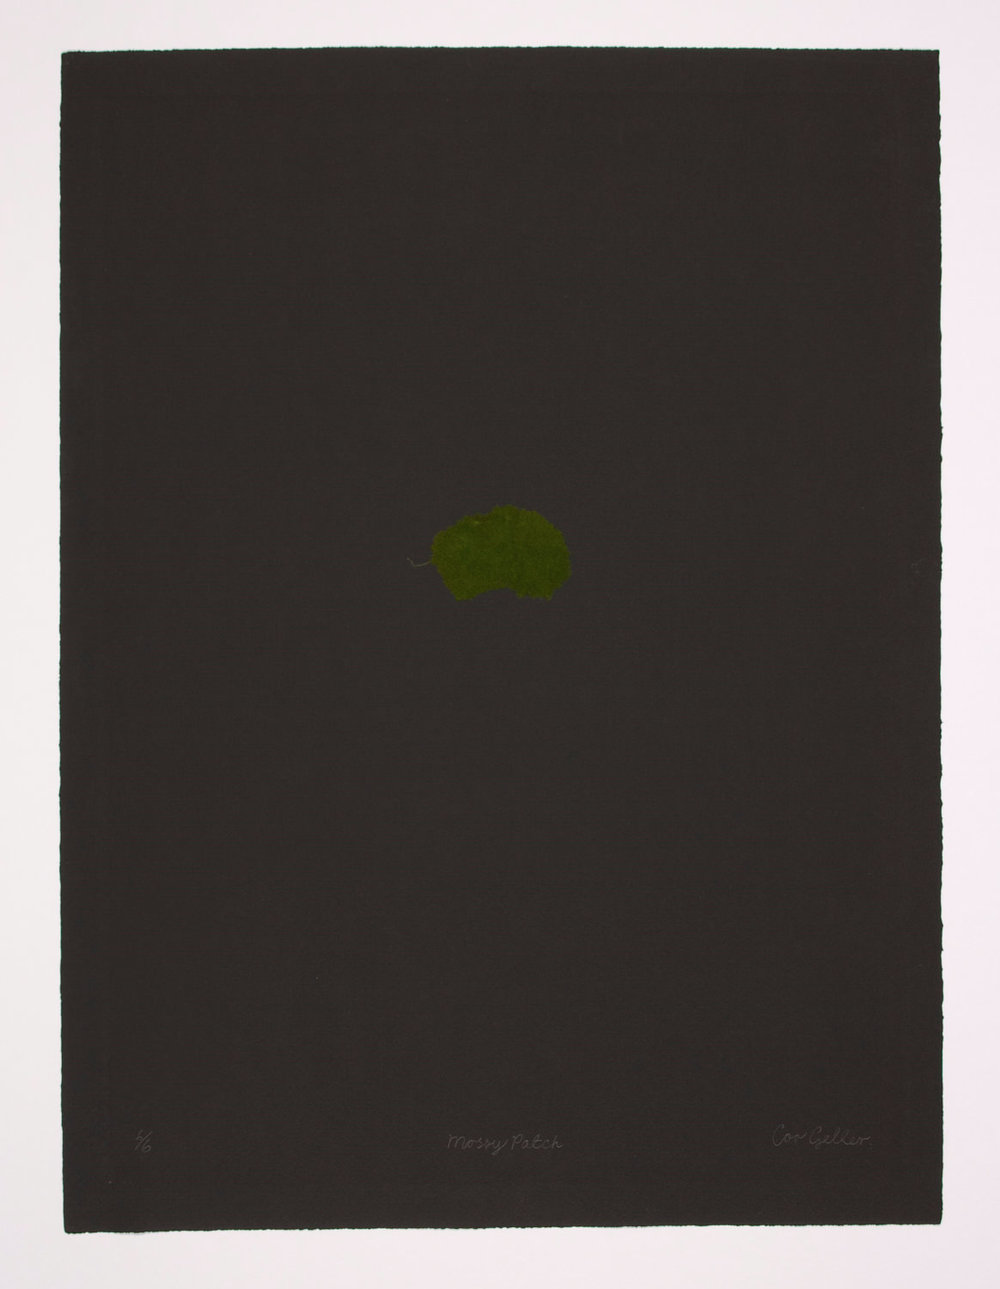 34c) mossy patch on black print.jpg